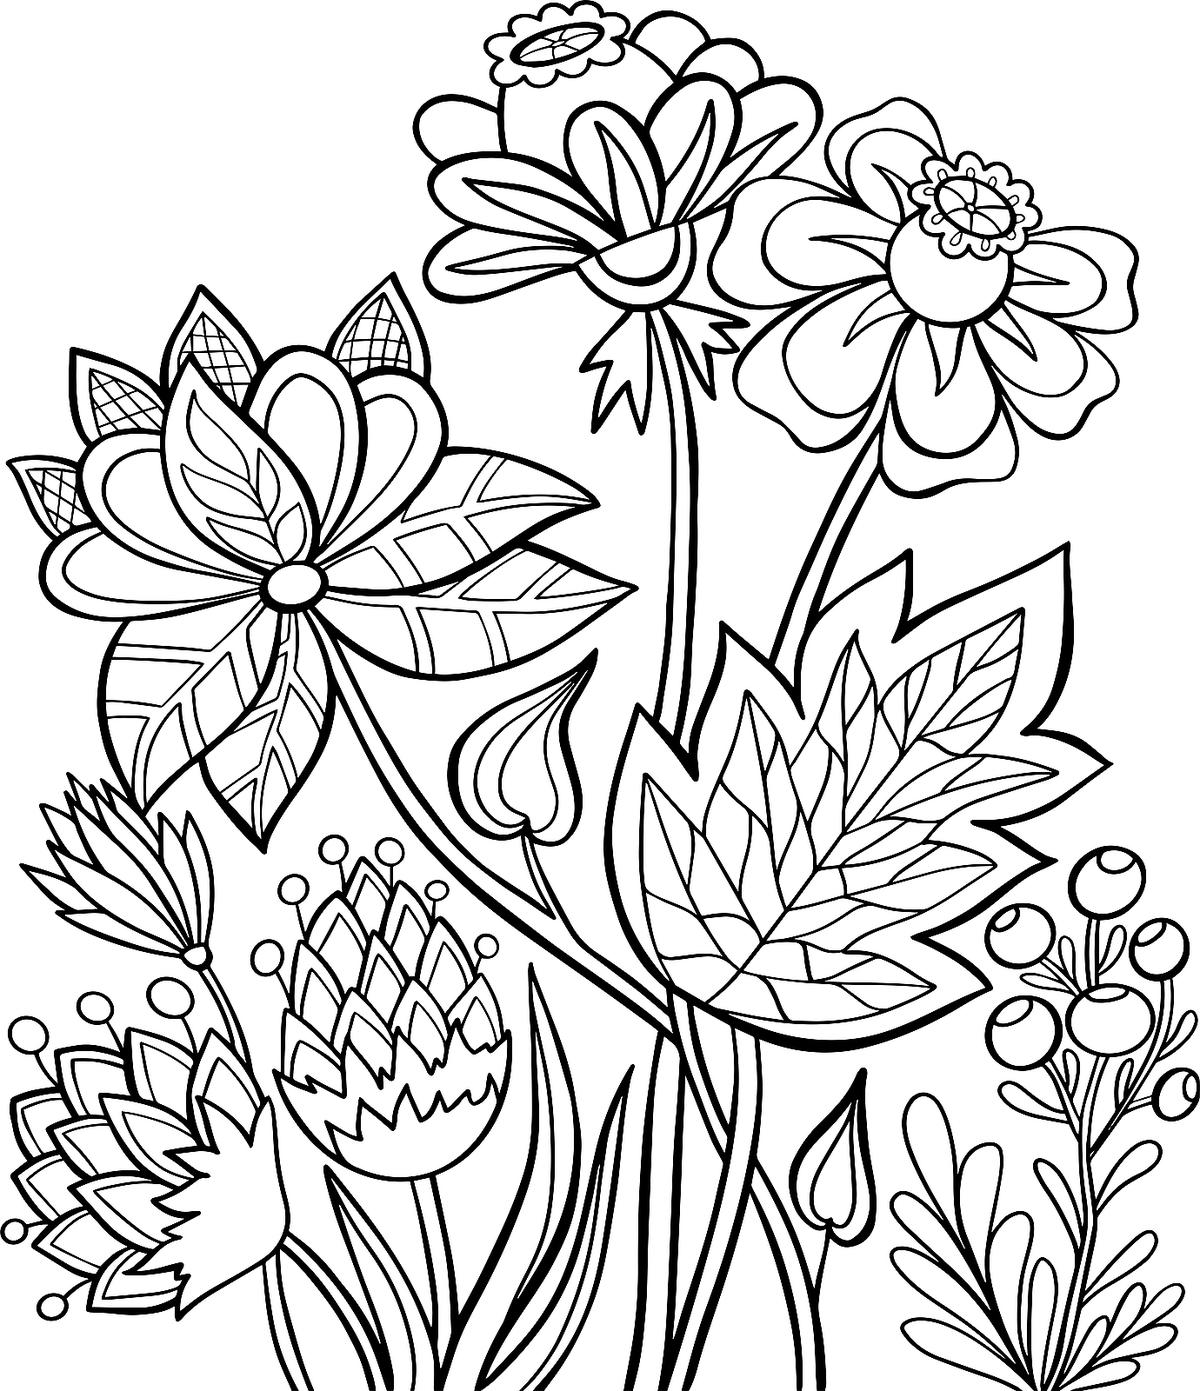 flowers coloring page spring flower coloring pages to download and print for free flowers coloring page